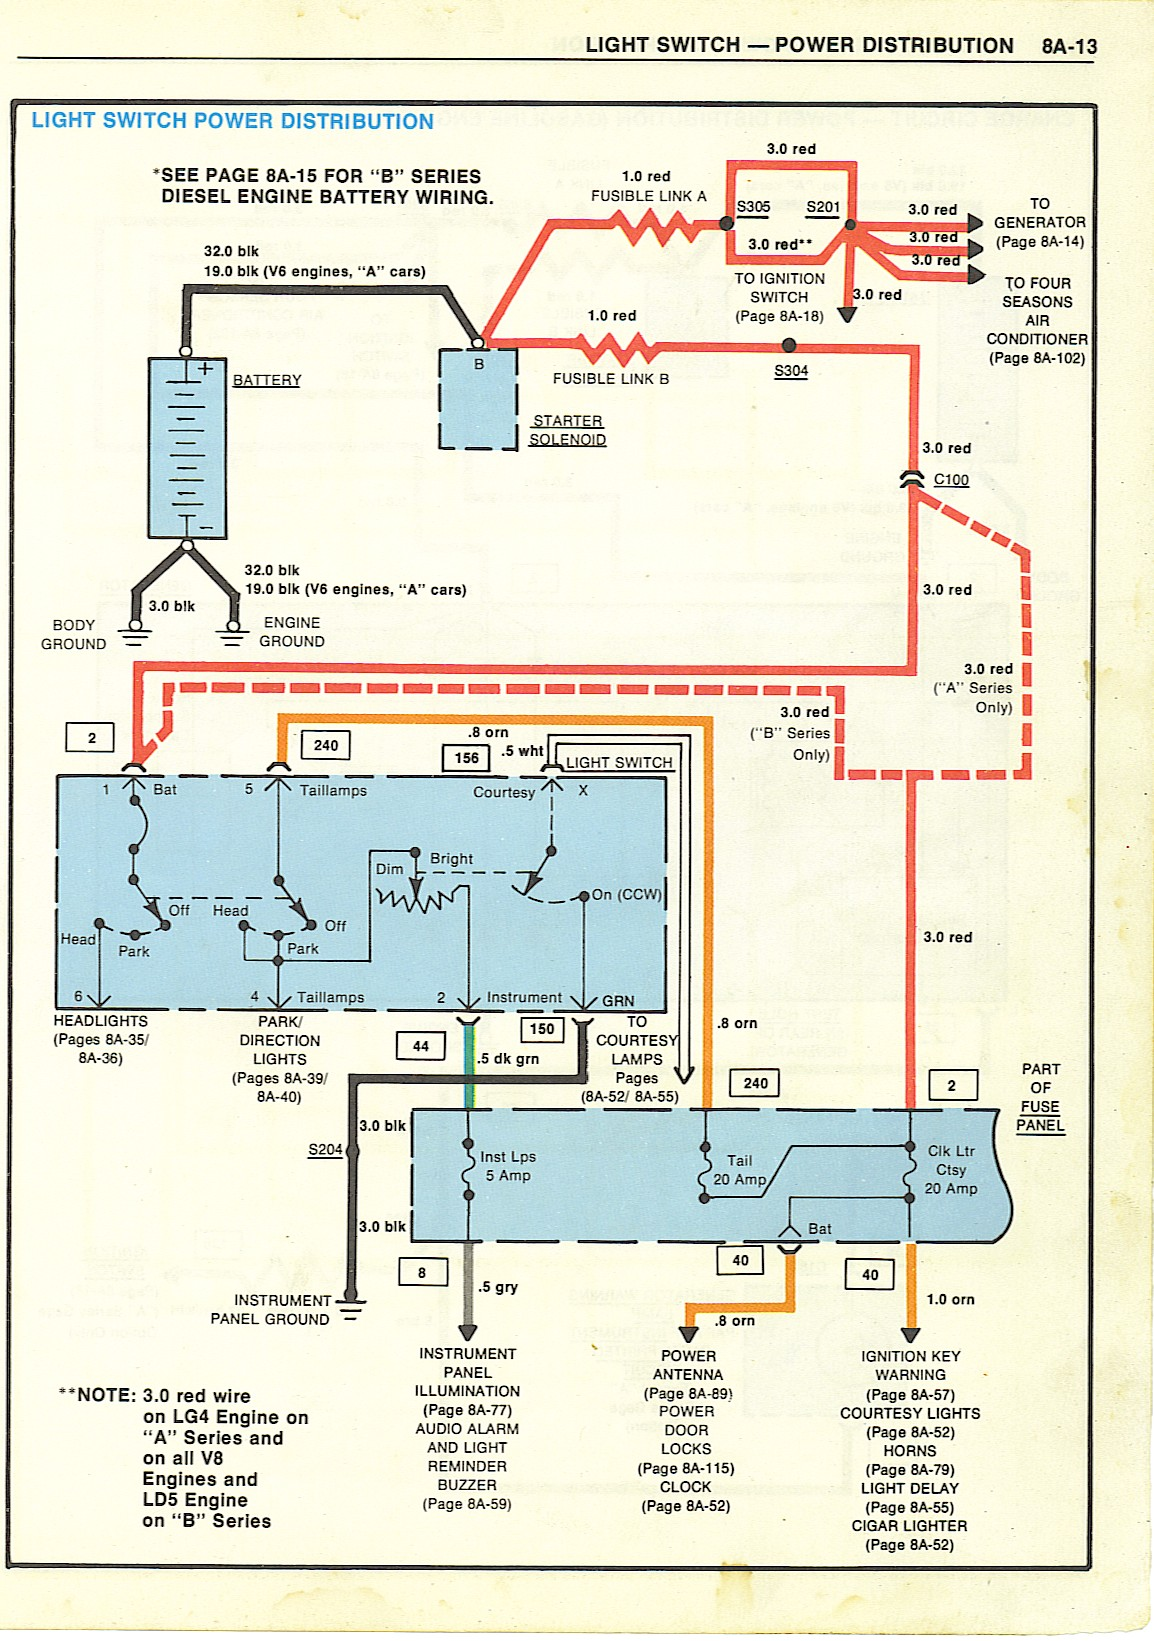 1980 chevrolet el camino wiring diagram schematic